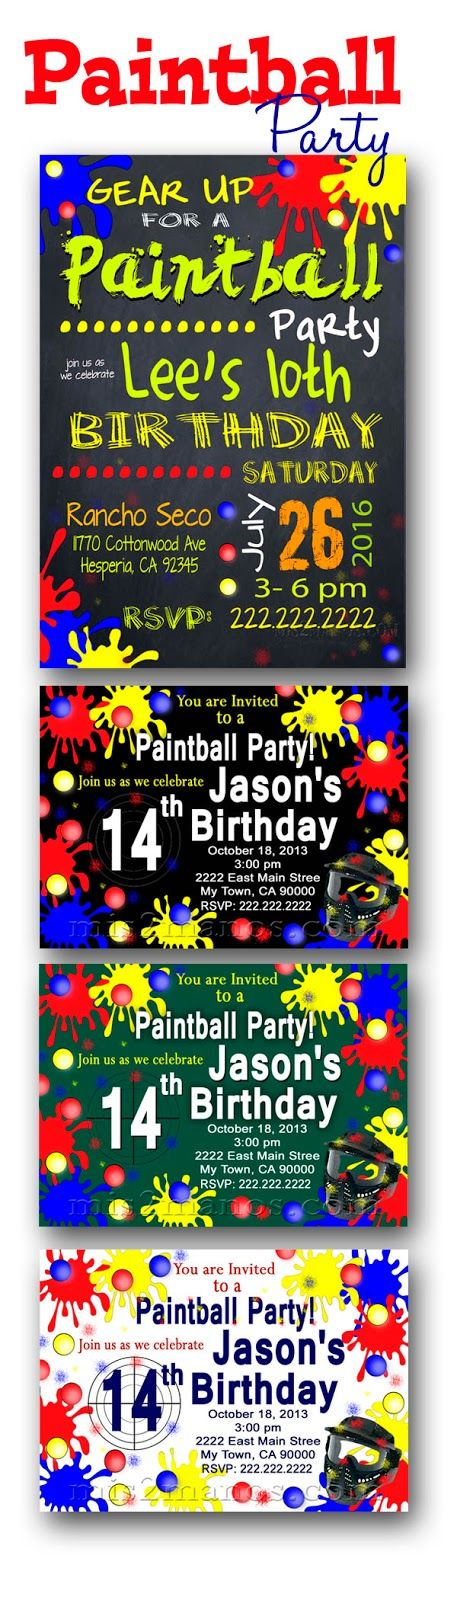 Paintball Party Invitations. Here are a few samples of Paintball Party Invite you might like for your next birthday.